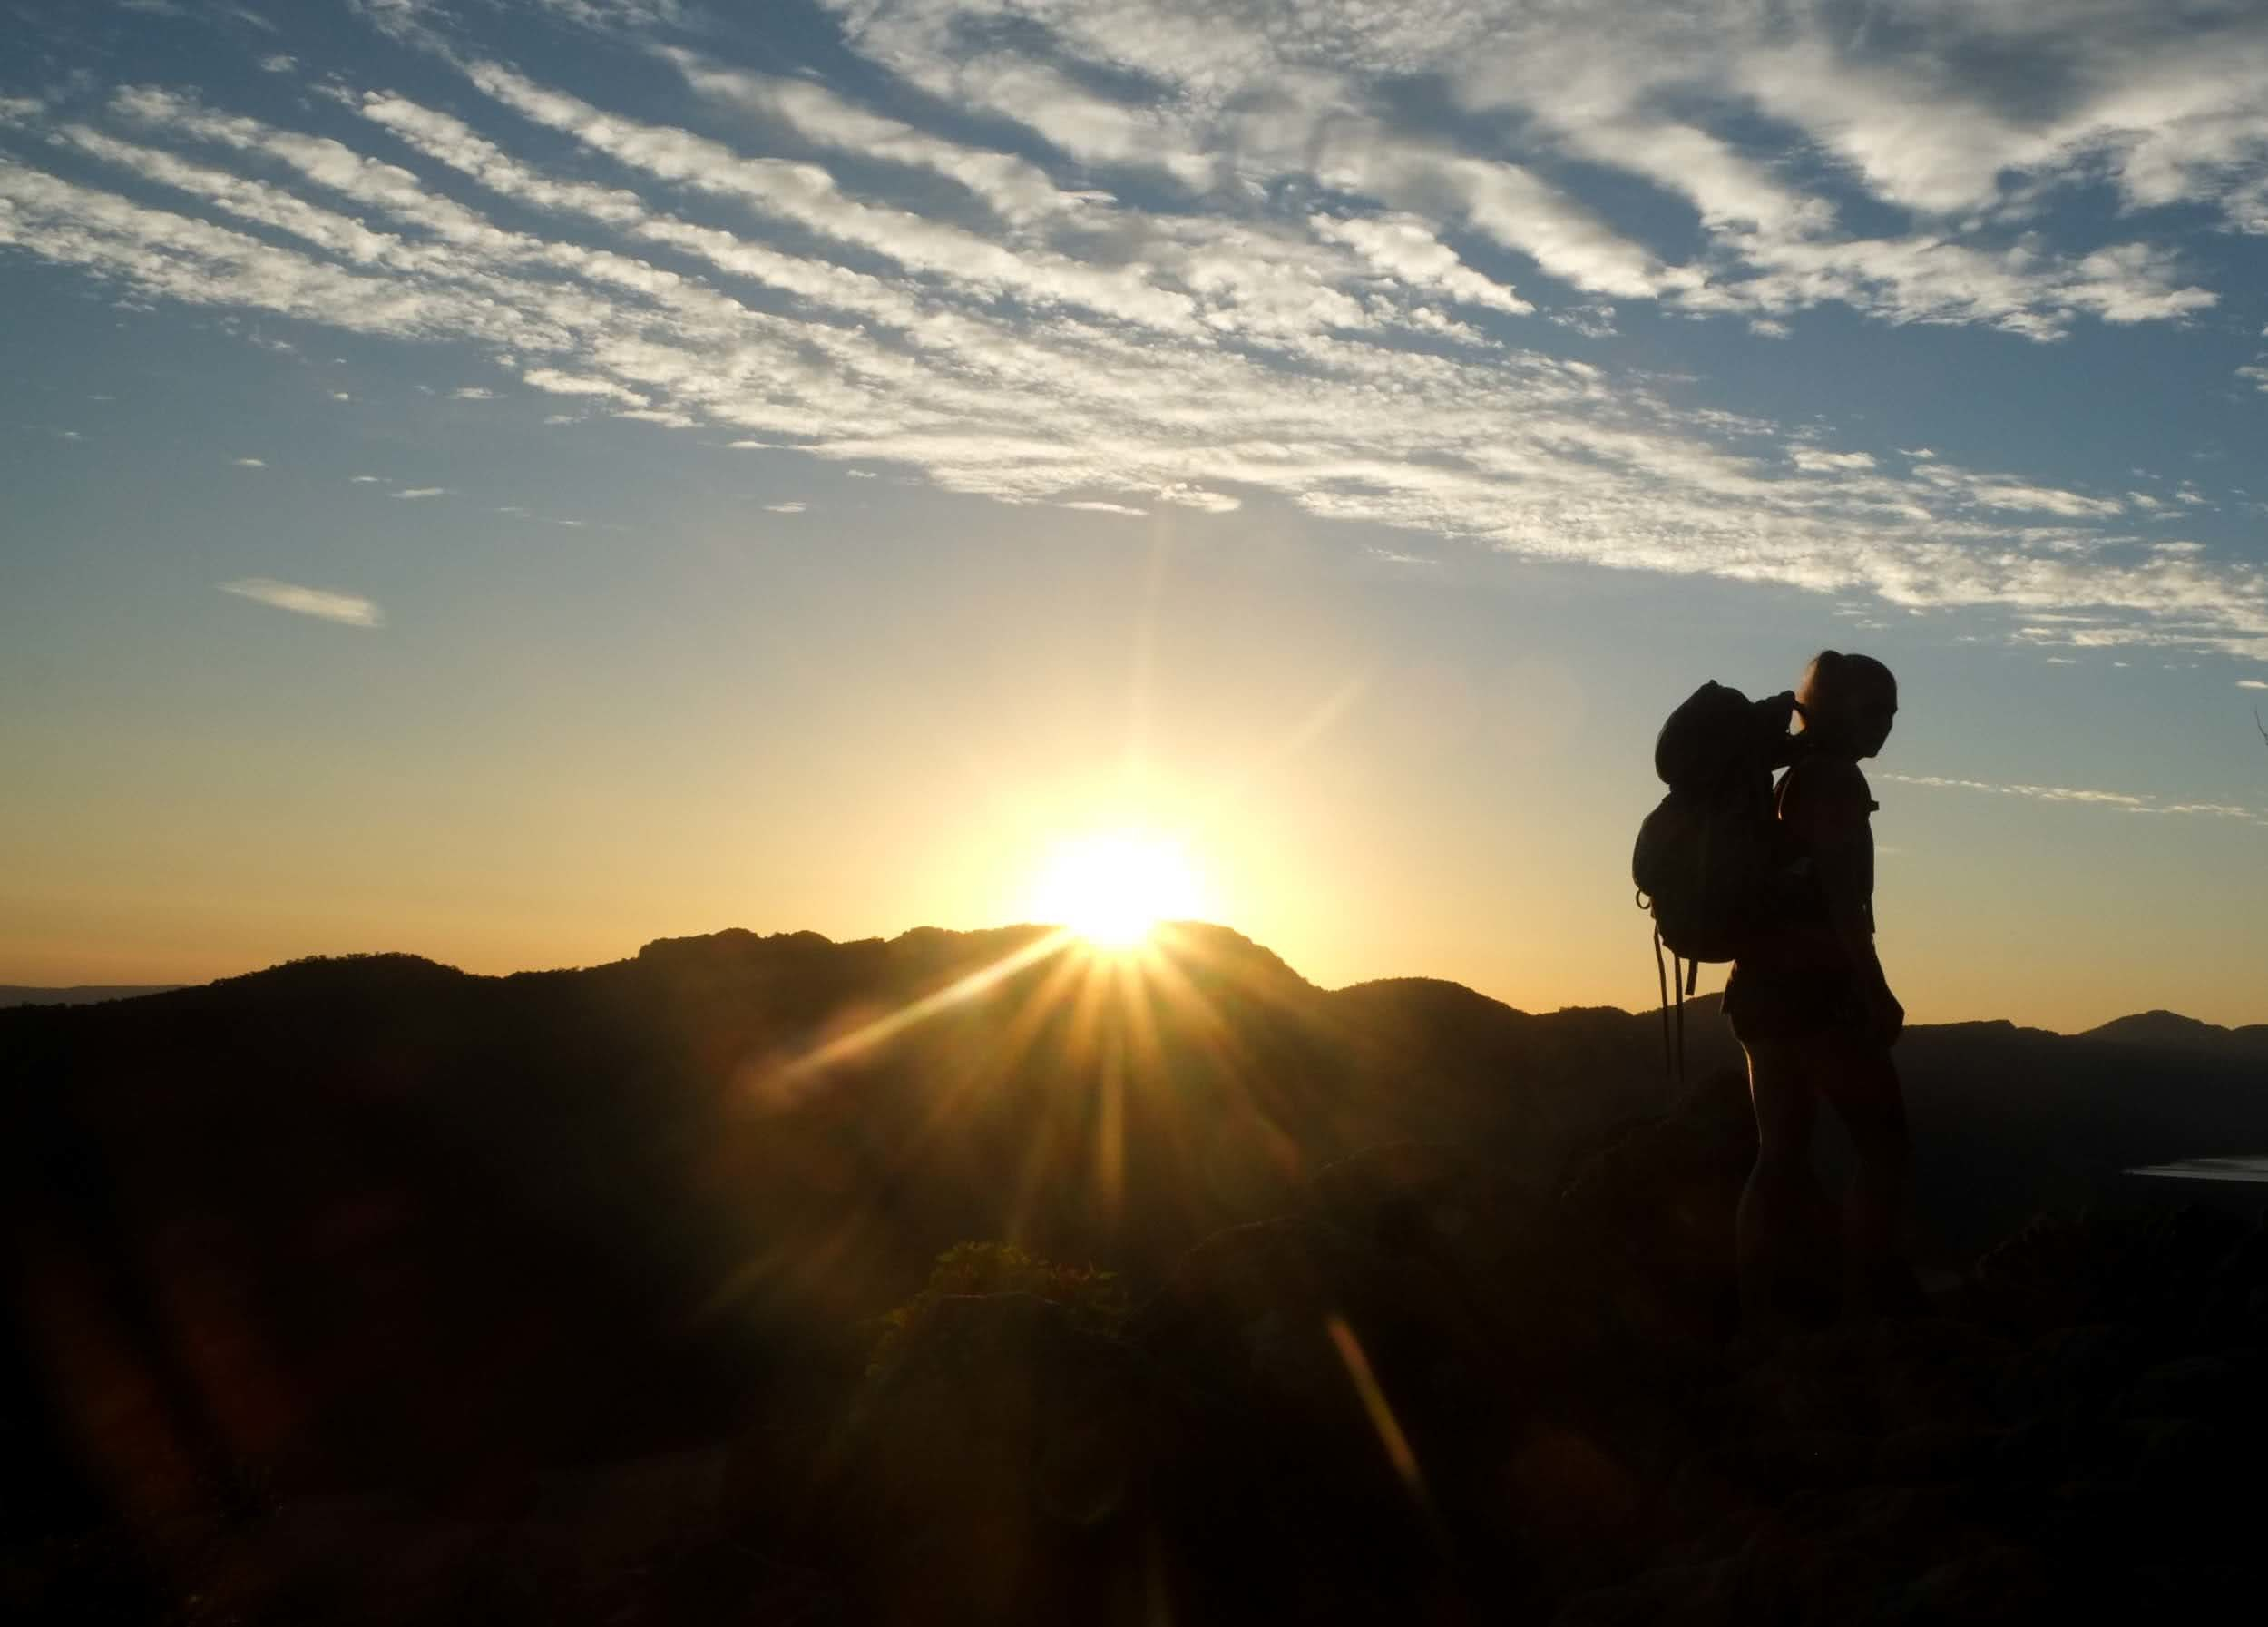 ruby bisson, get fitted for a hiking backpack, photo by Rhianna, mr timbuktu, sunset, silhouette